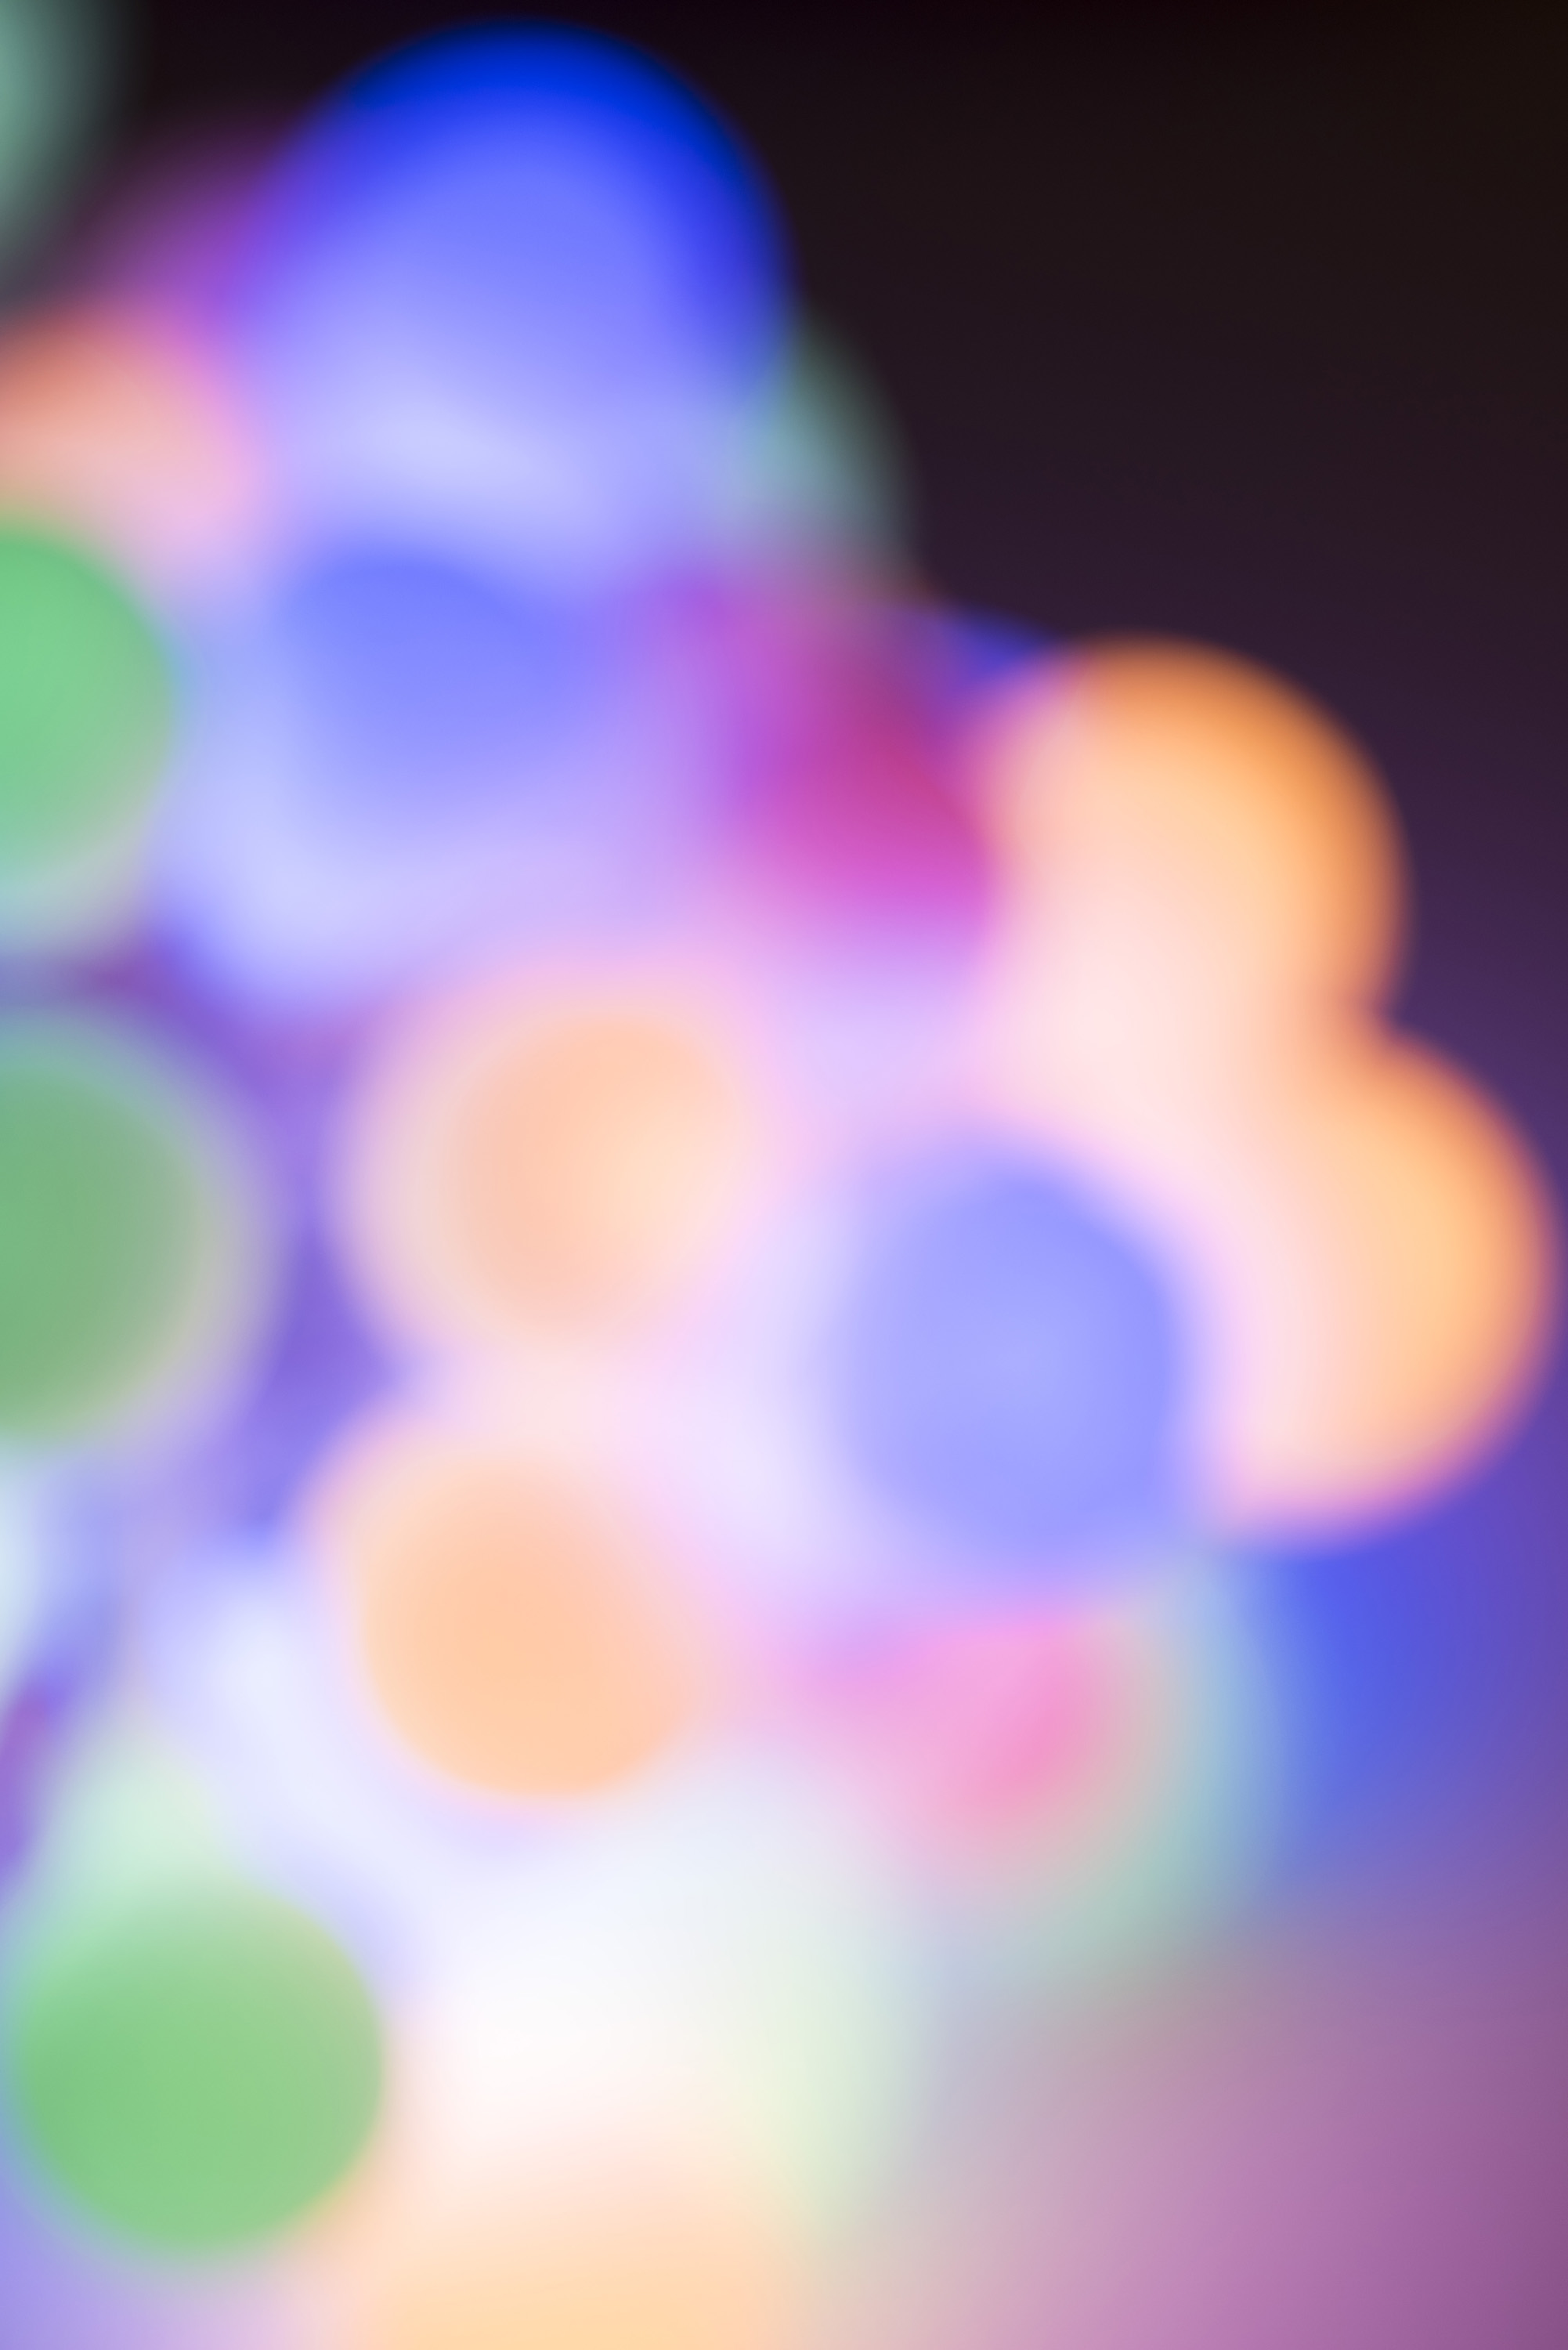 Defocused colorful Christmas lights background of multicolored round lights in a cluster with copy space for your holiday or seasonal message